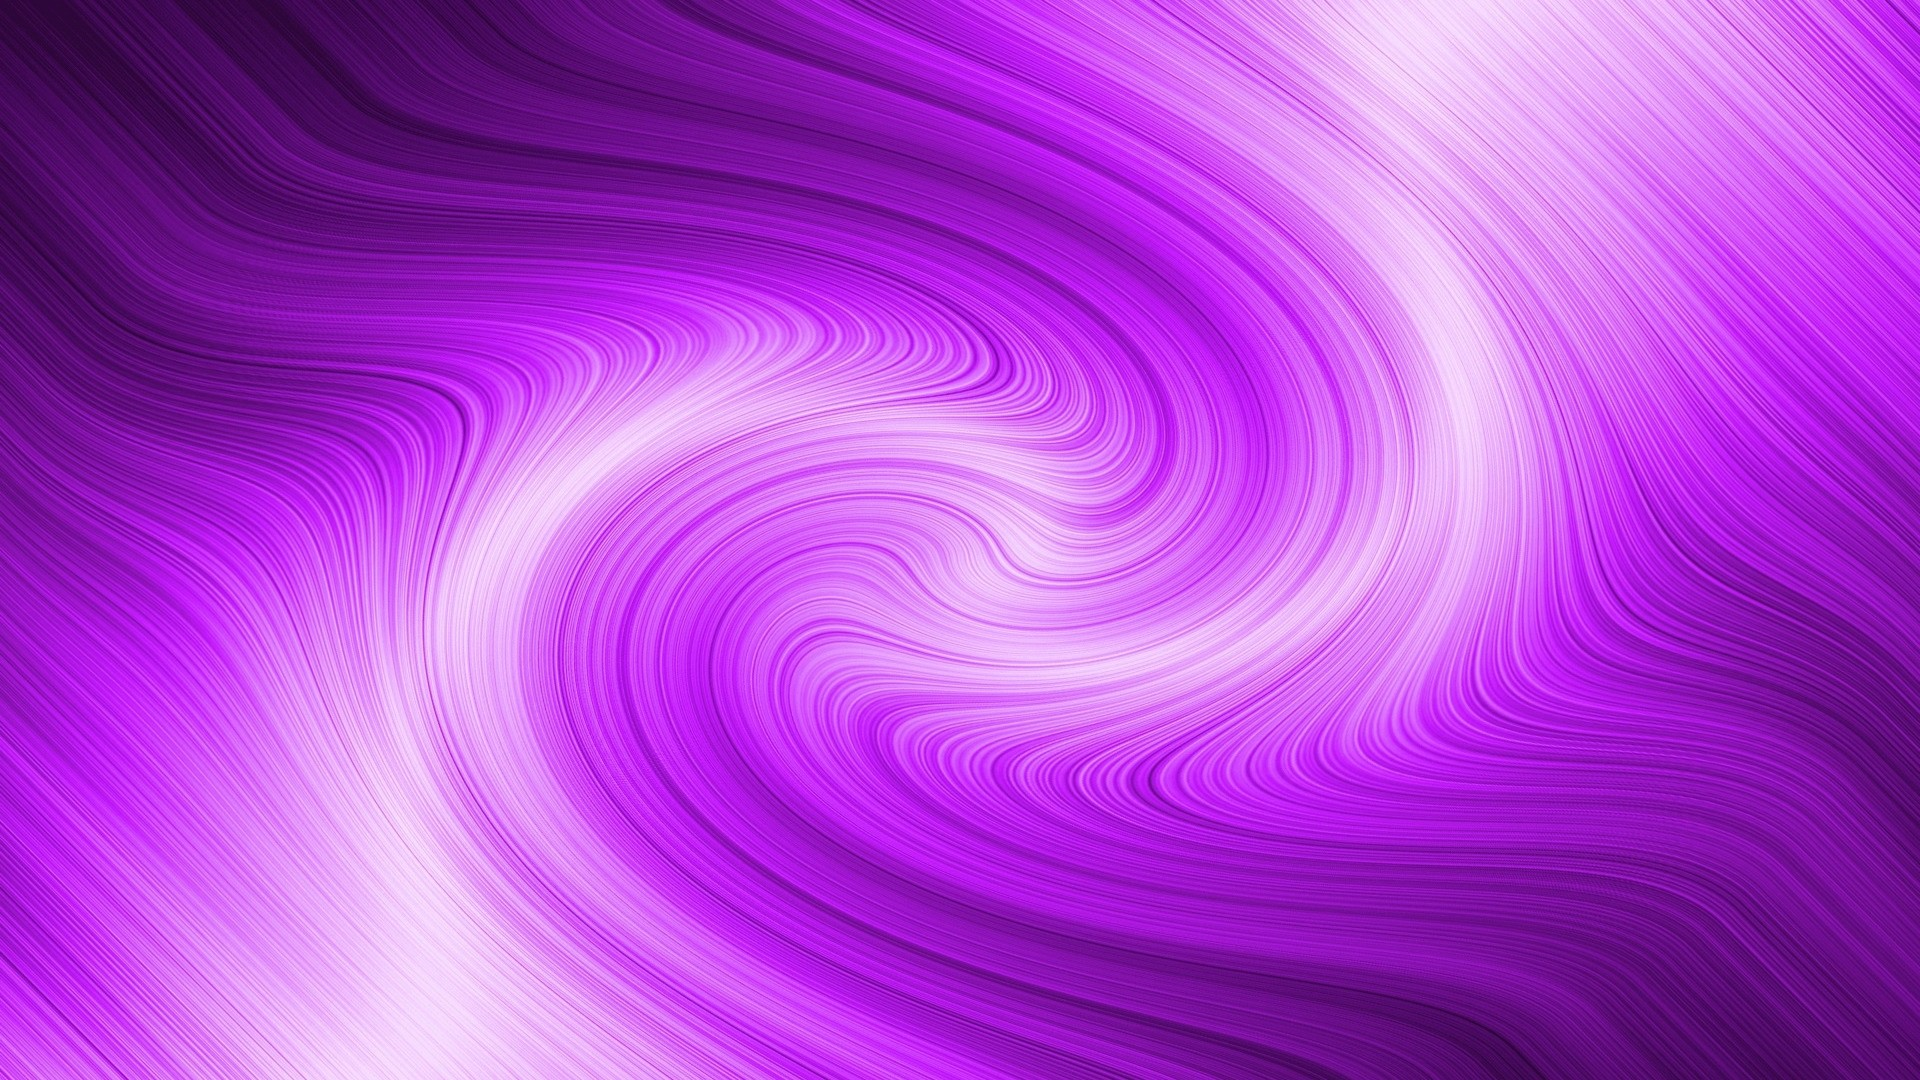 Light Purple Free Wallpaper and Background